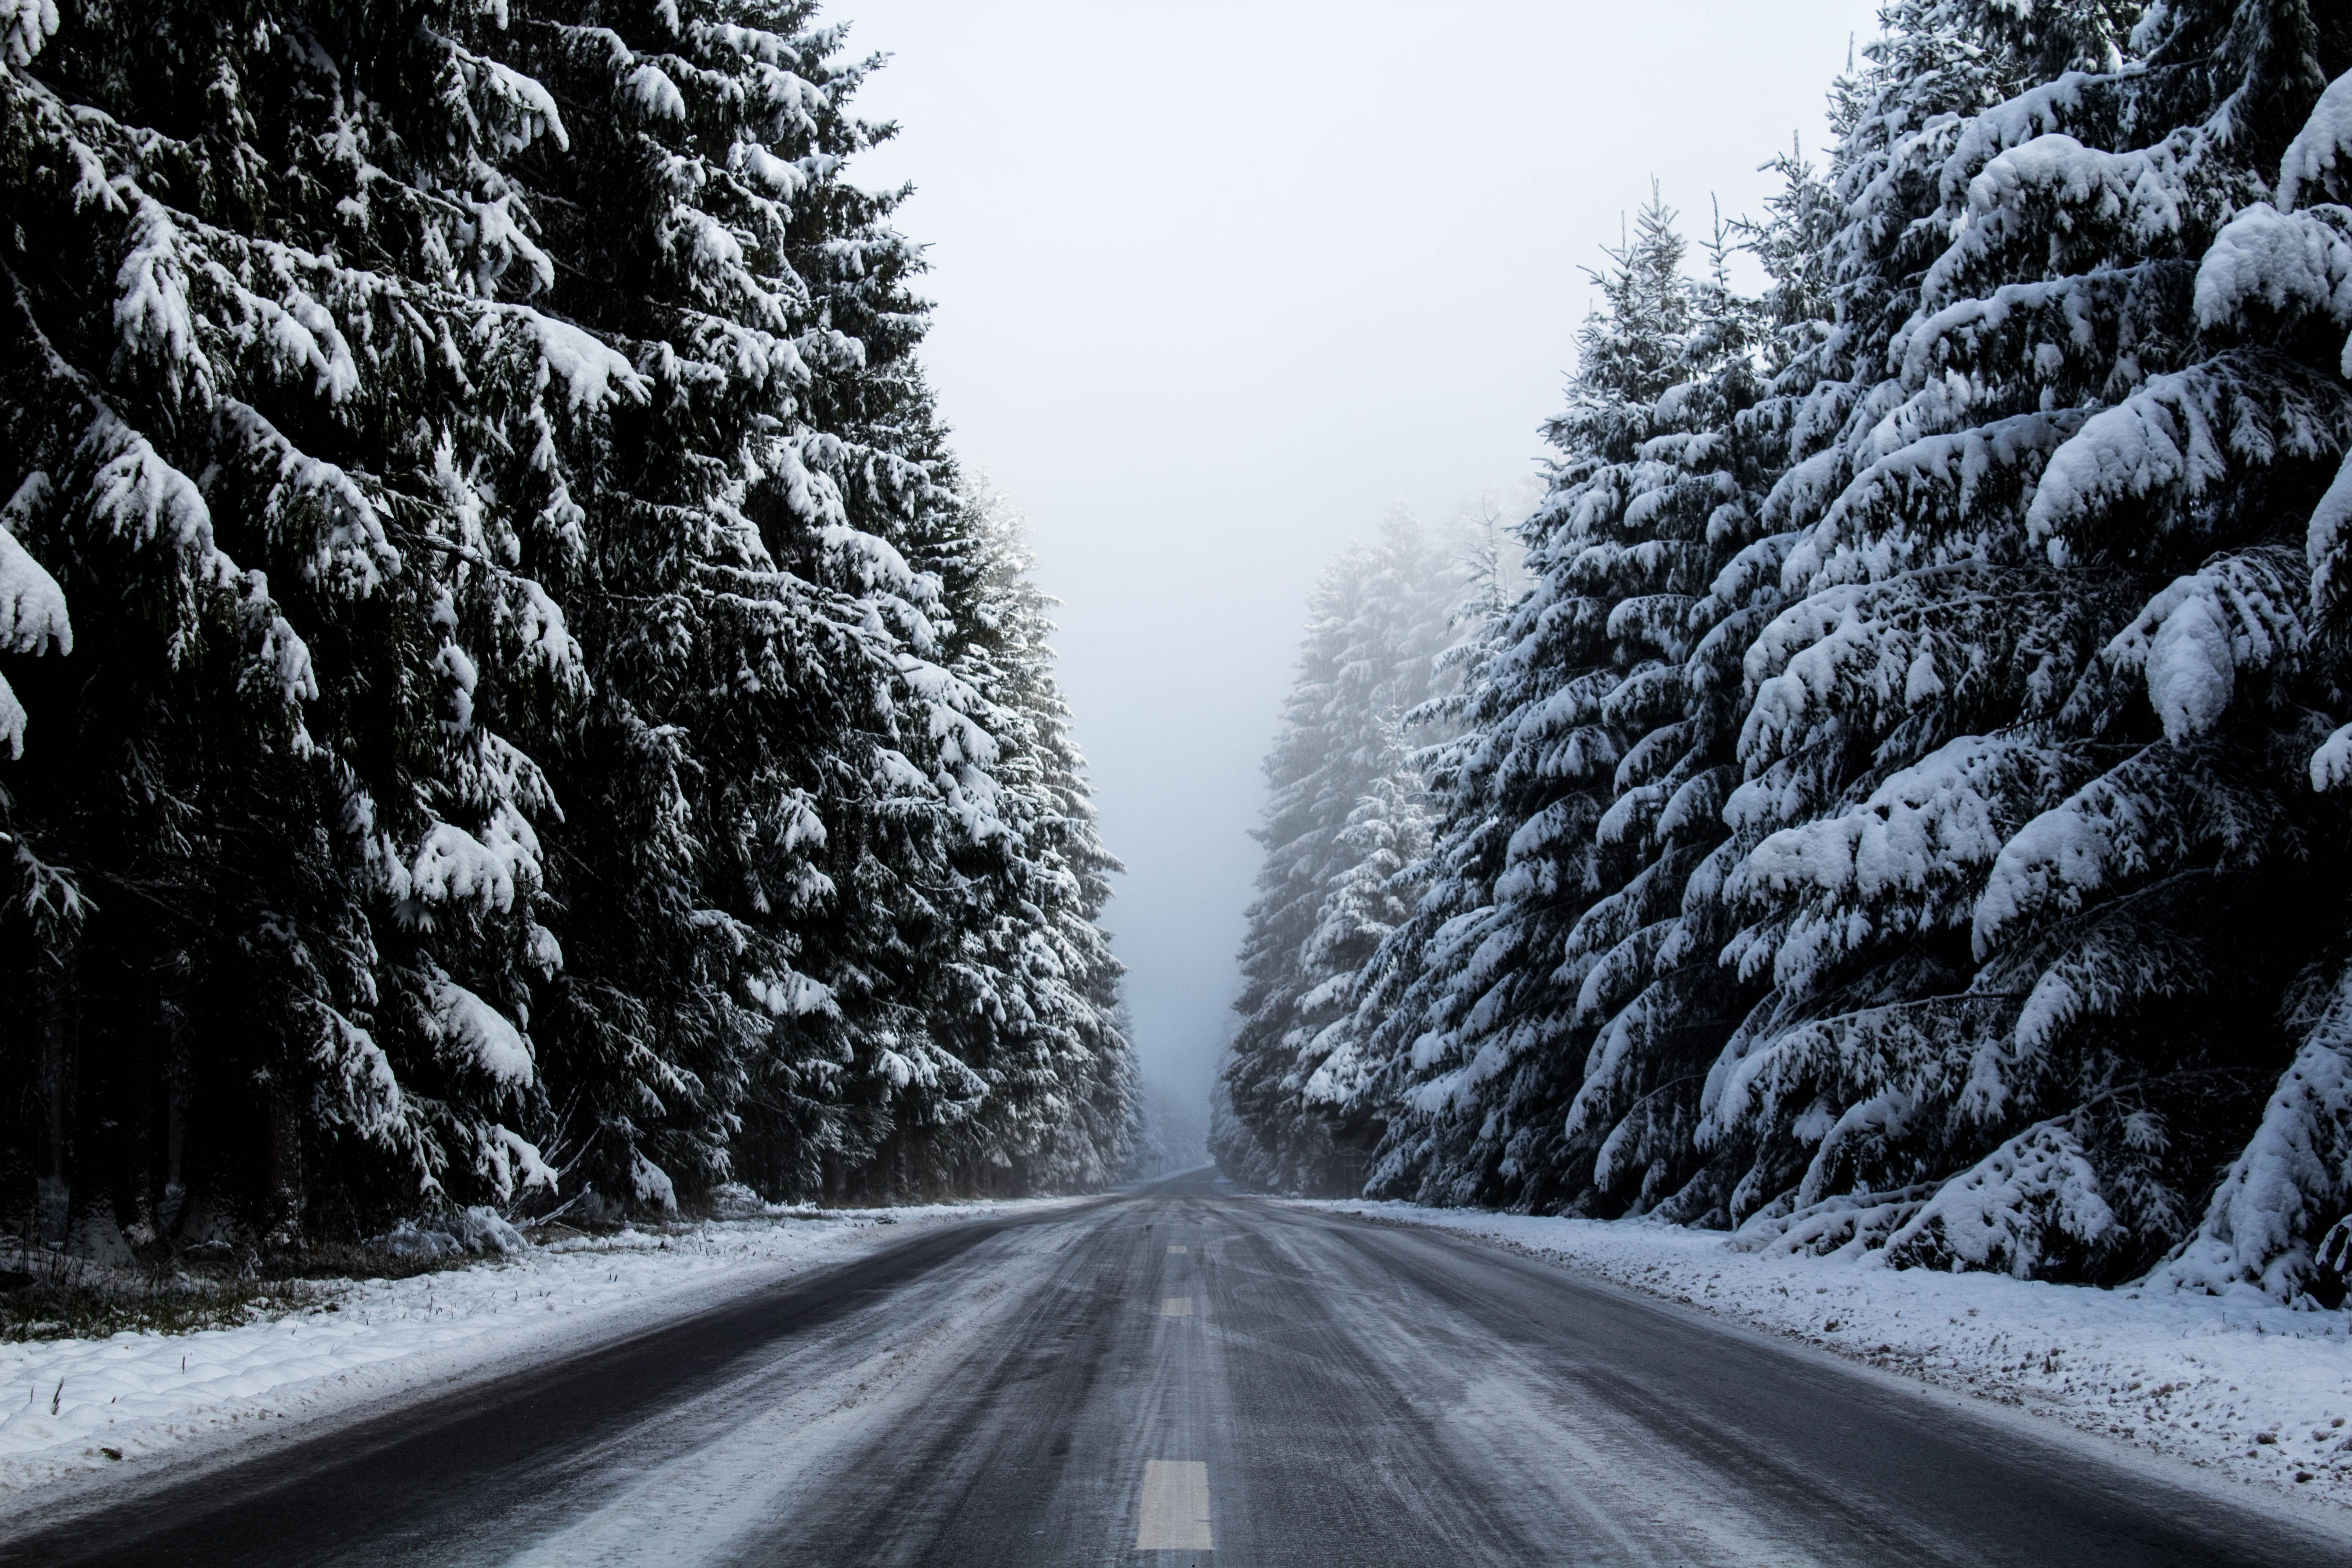 grayscale photo of road surrounded by pine trees with snows